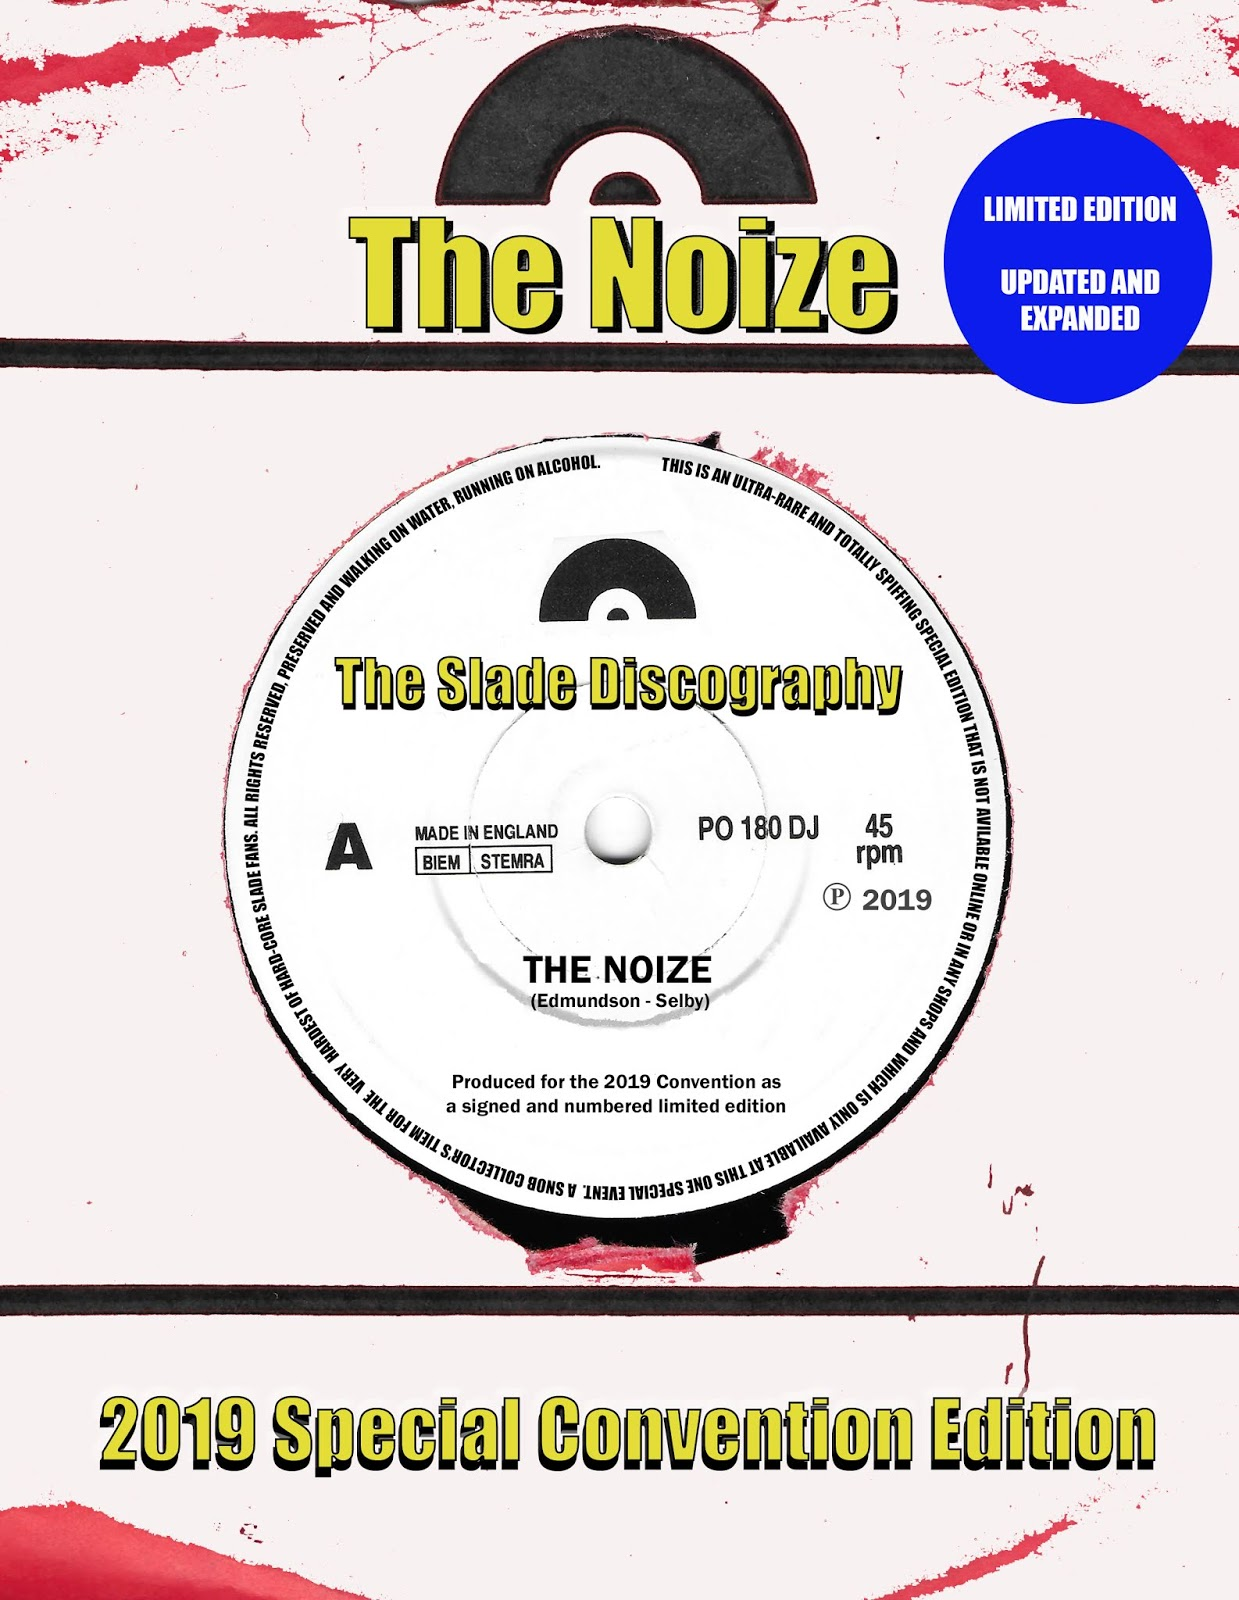 THE NOIZE 2019 Convention edition.